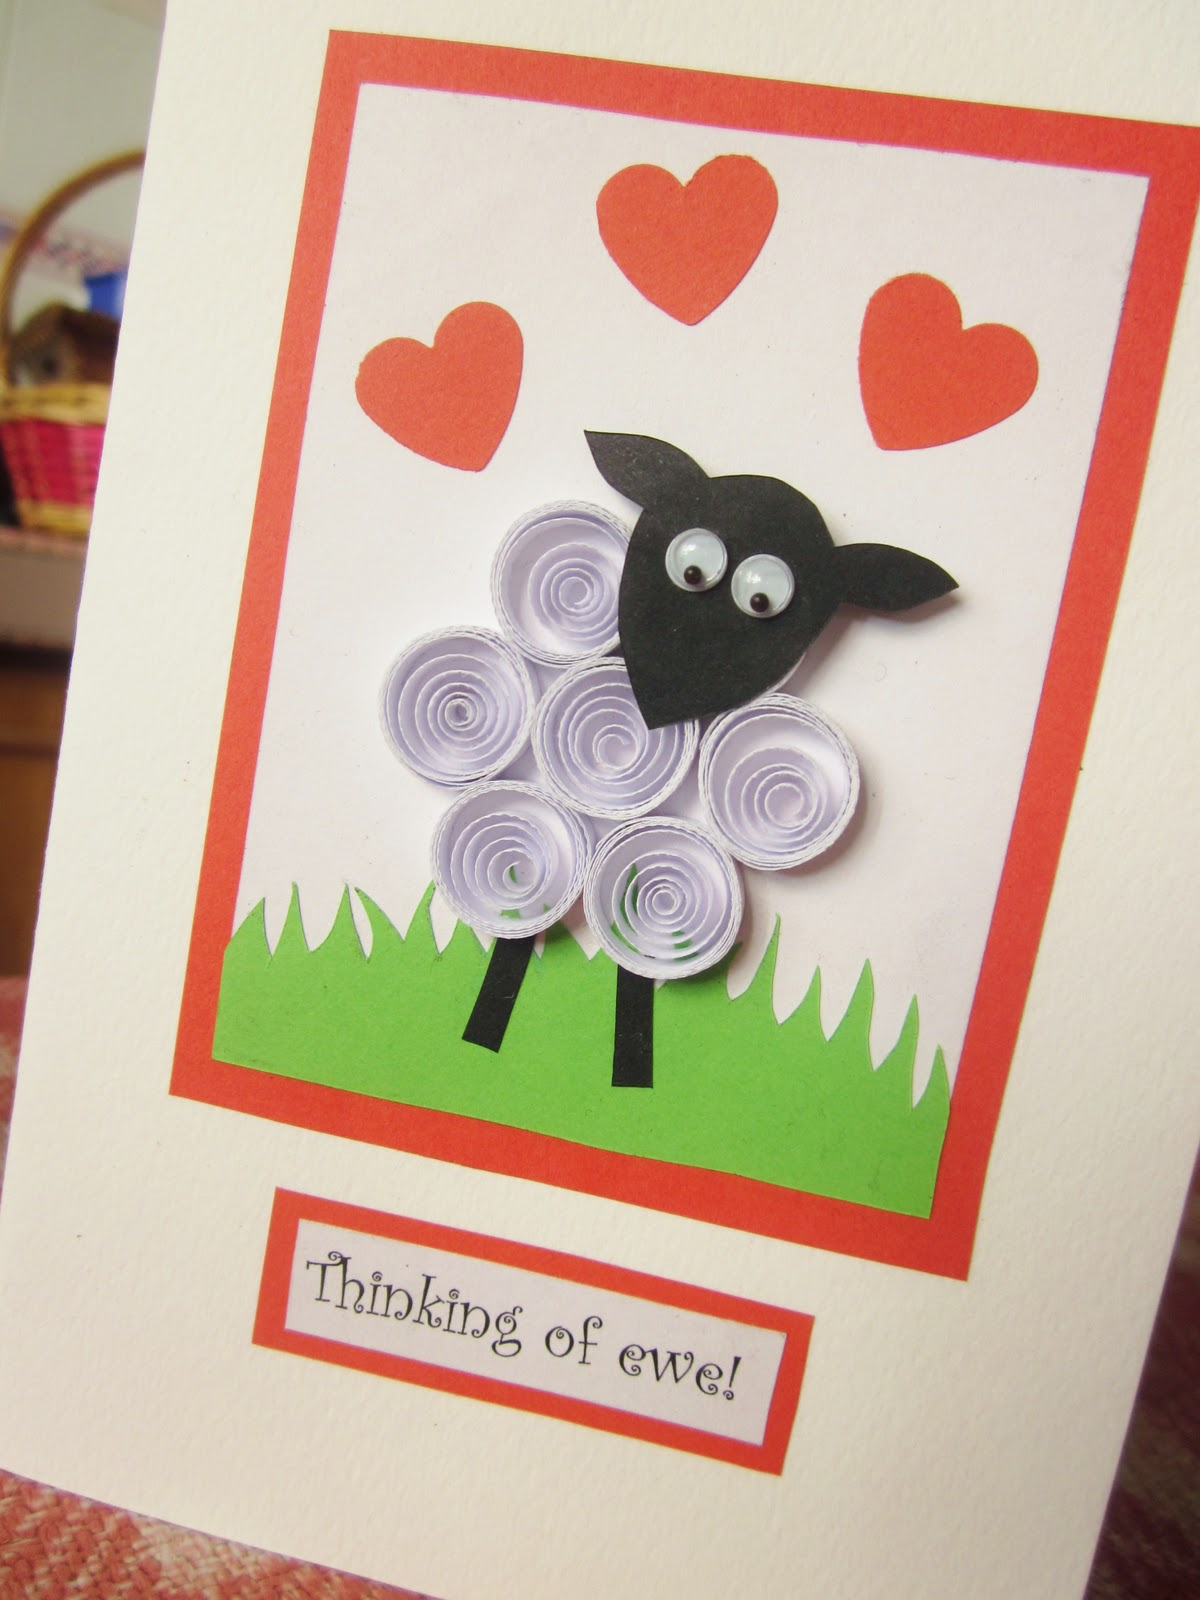 Yuenies fancies handmade quilled pop up cards bookmarks gifts my first thinking of you card which can be used for all occasions but who says you need an occasion anyway nothing sweeter than a message to let that publicscrutiny Image collections